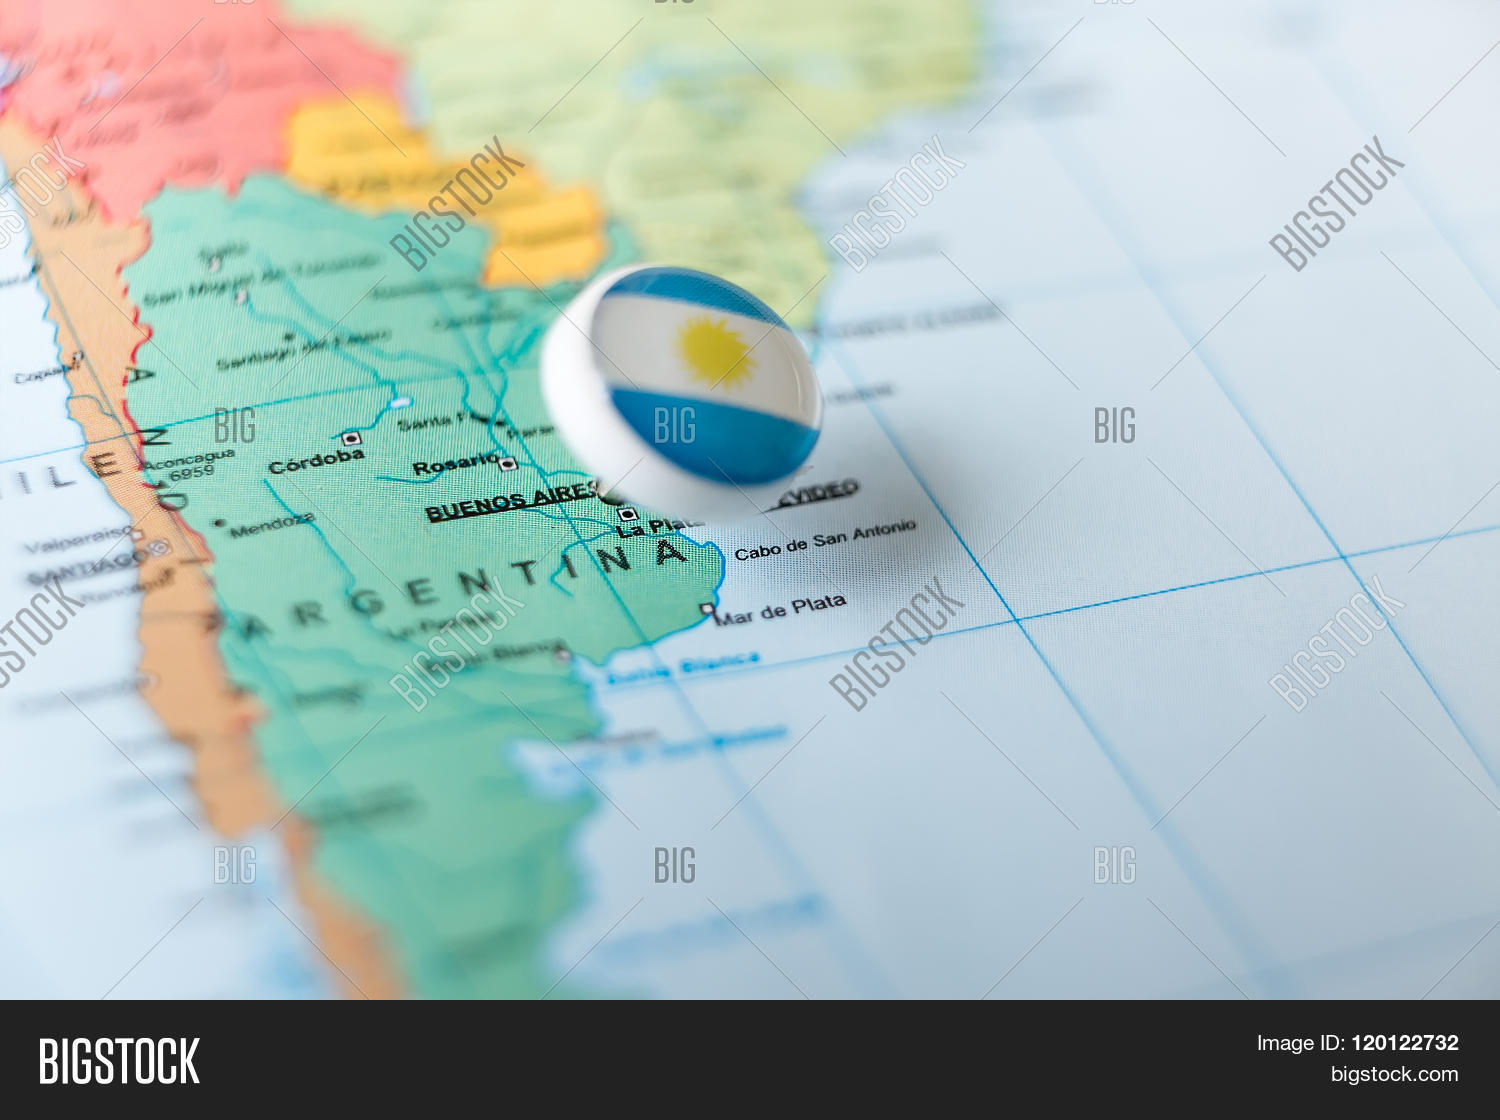 Pin Pointing Argentina On Map South Image Photo Bigstock - Argentina globe map